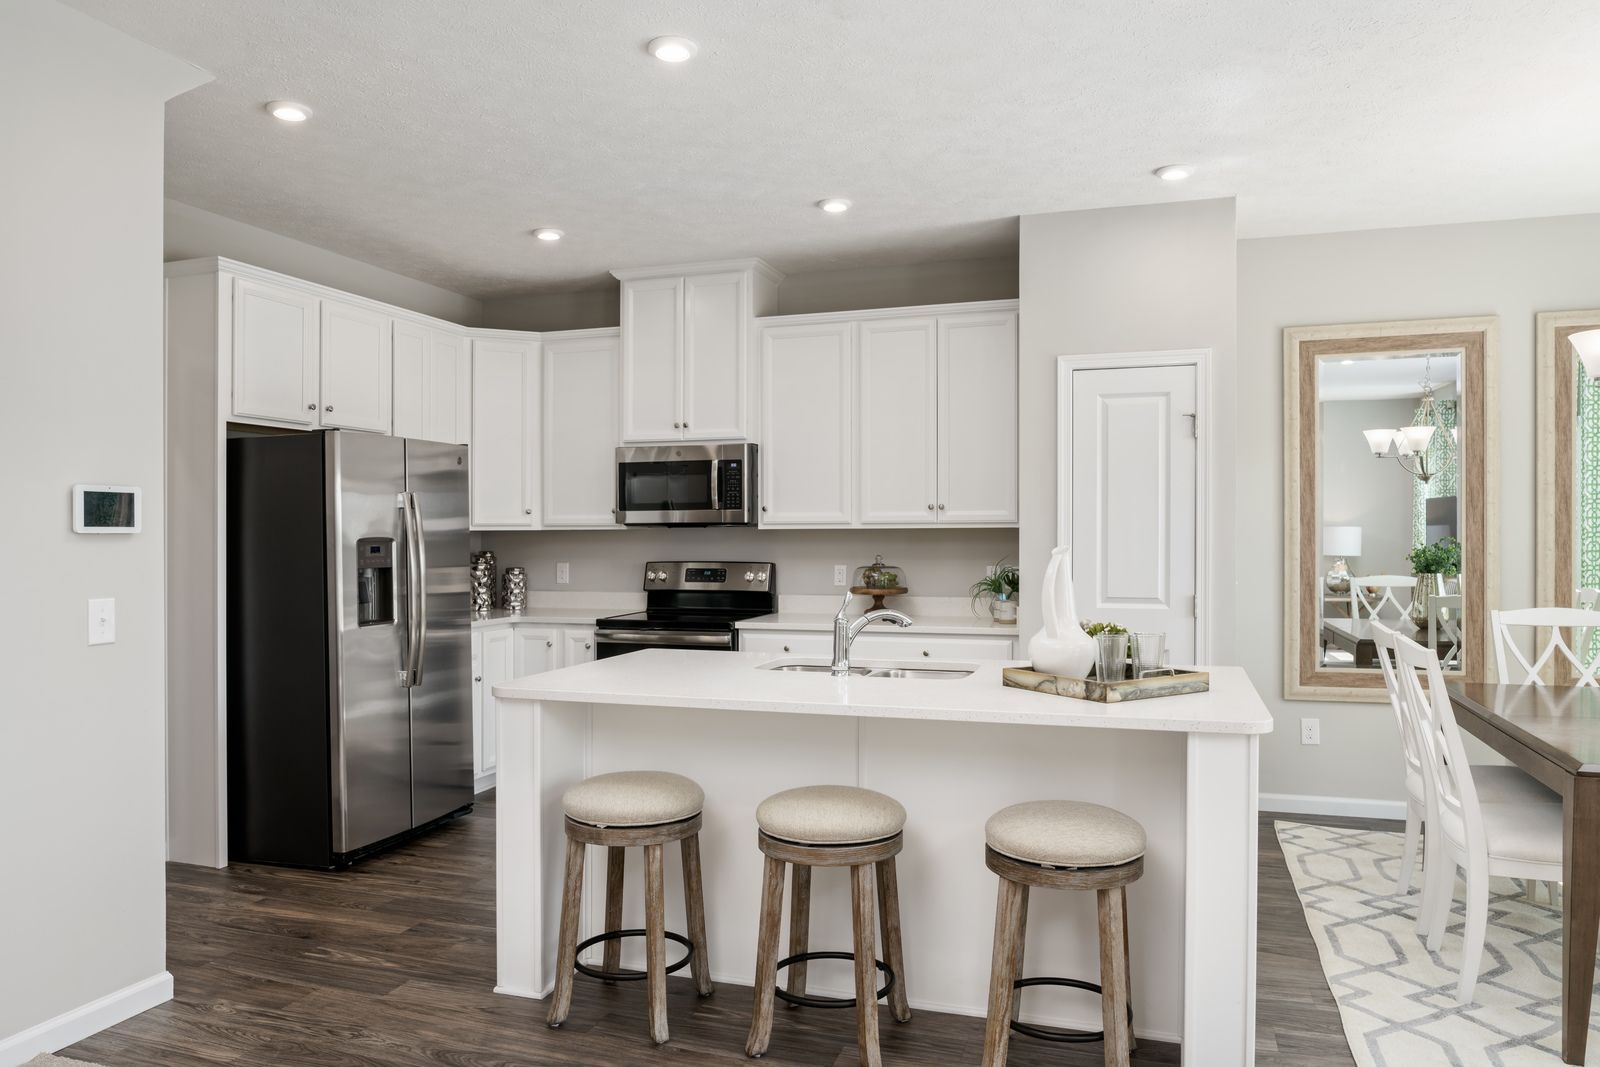 JOIN THE TOWNS AT CEDAR CREST IN STOW VIP LIST TODAY—SINGLE FAMILY STYLE LIVING!:Own a Single Family Style Townhome with Full Basement in Stow! Serene setting tucked off Rt 91, just south of Hudson! Lawn and snow care provided.Click here to join the VIP List!